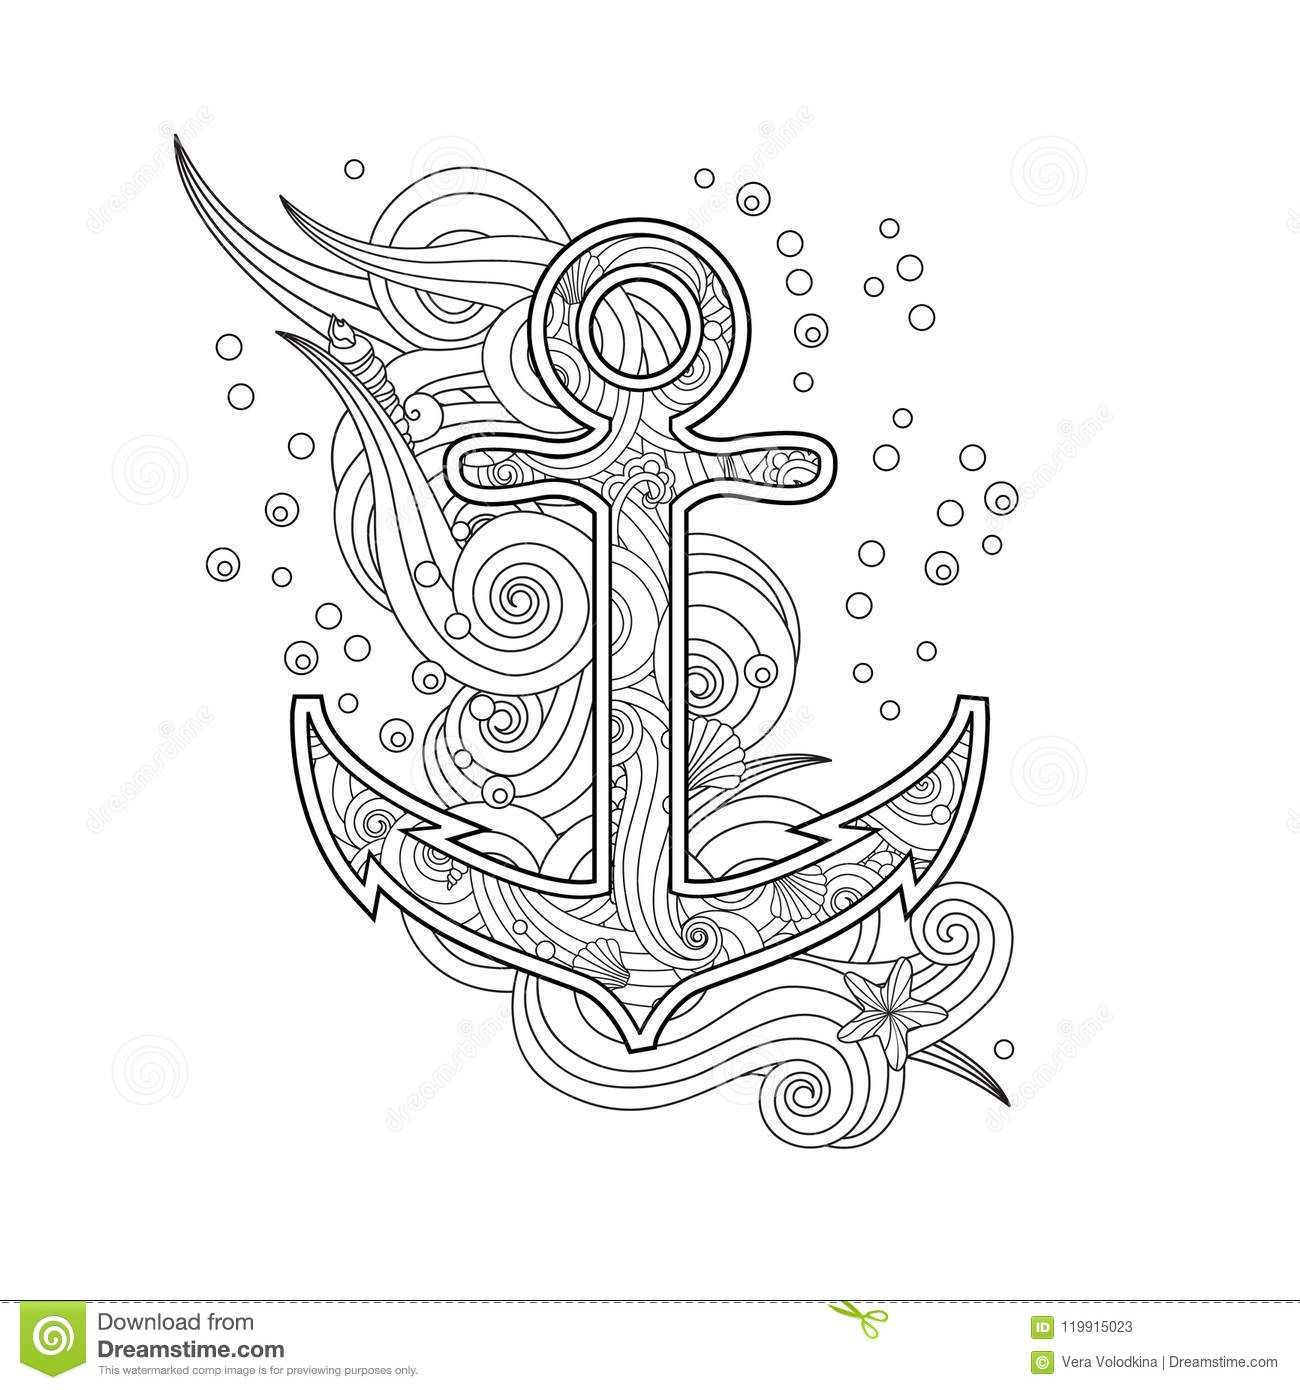 Contour image of anchor in zentangle inspired doodle style